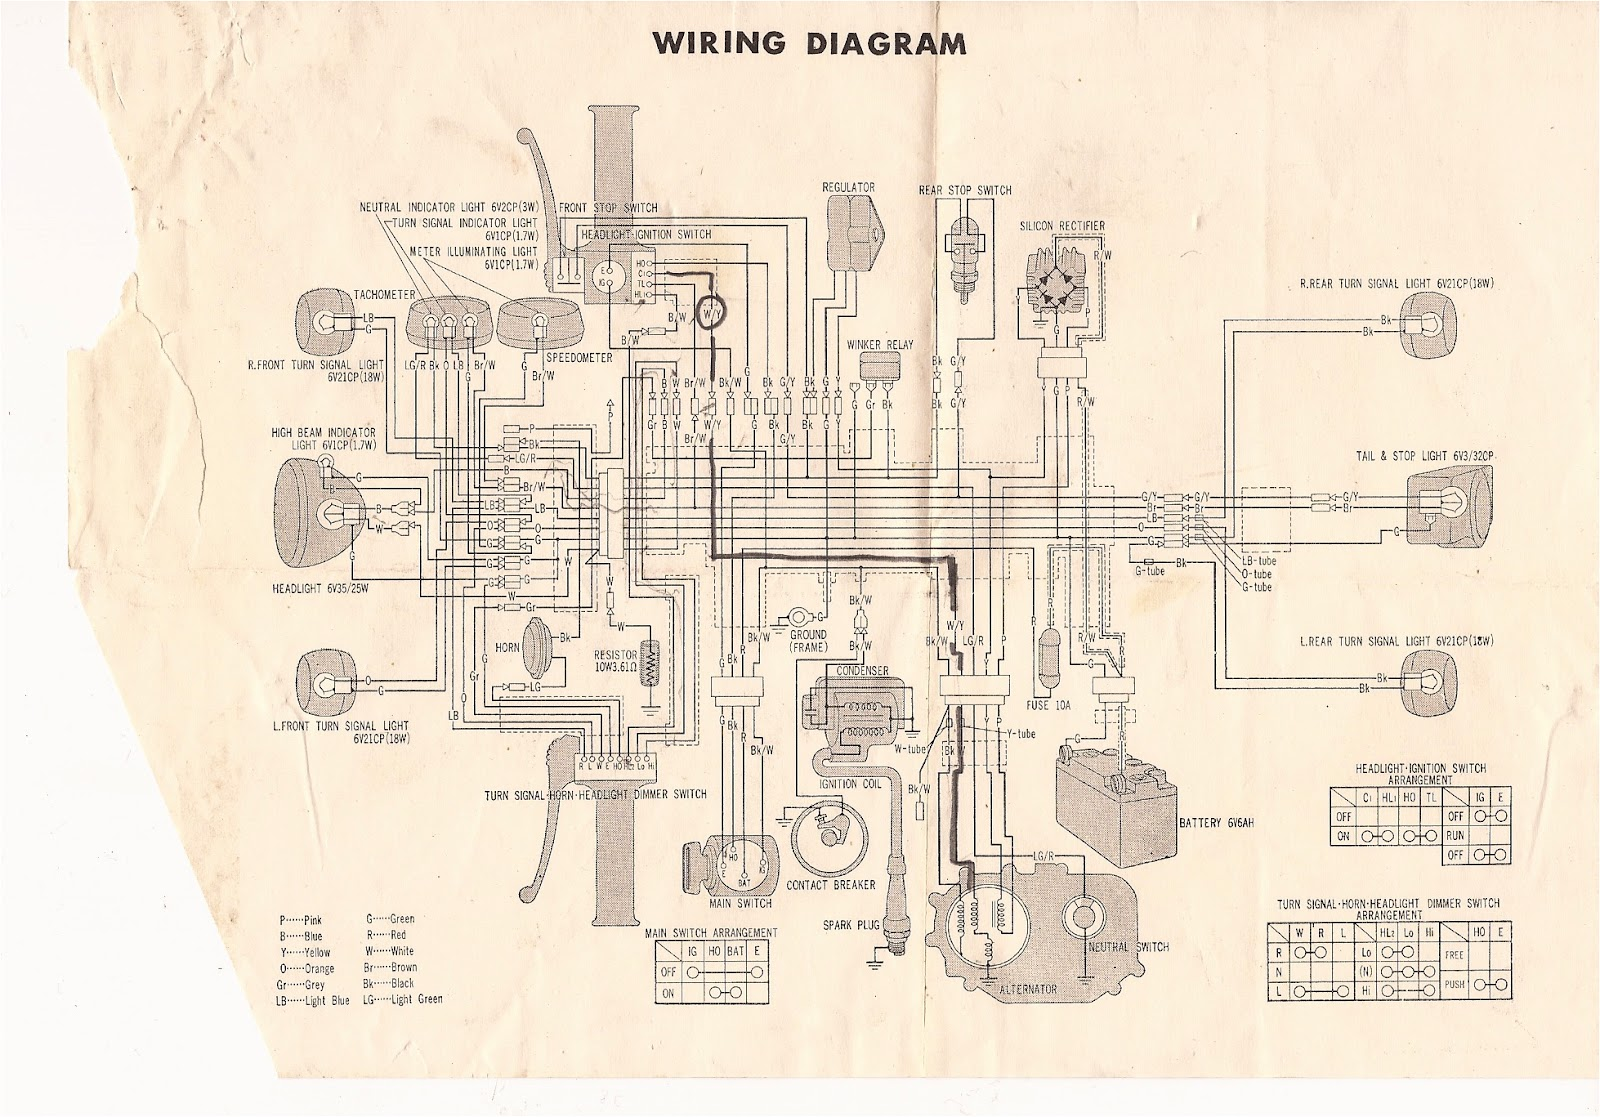 XL350+Wiring+diagram cb360 wiring diagram c70 wiring diagram \u2022 wiring diagrams j 1981 honda ct70 wiring diagram at readyjetset.co